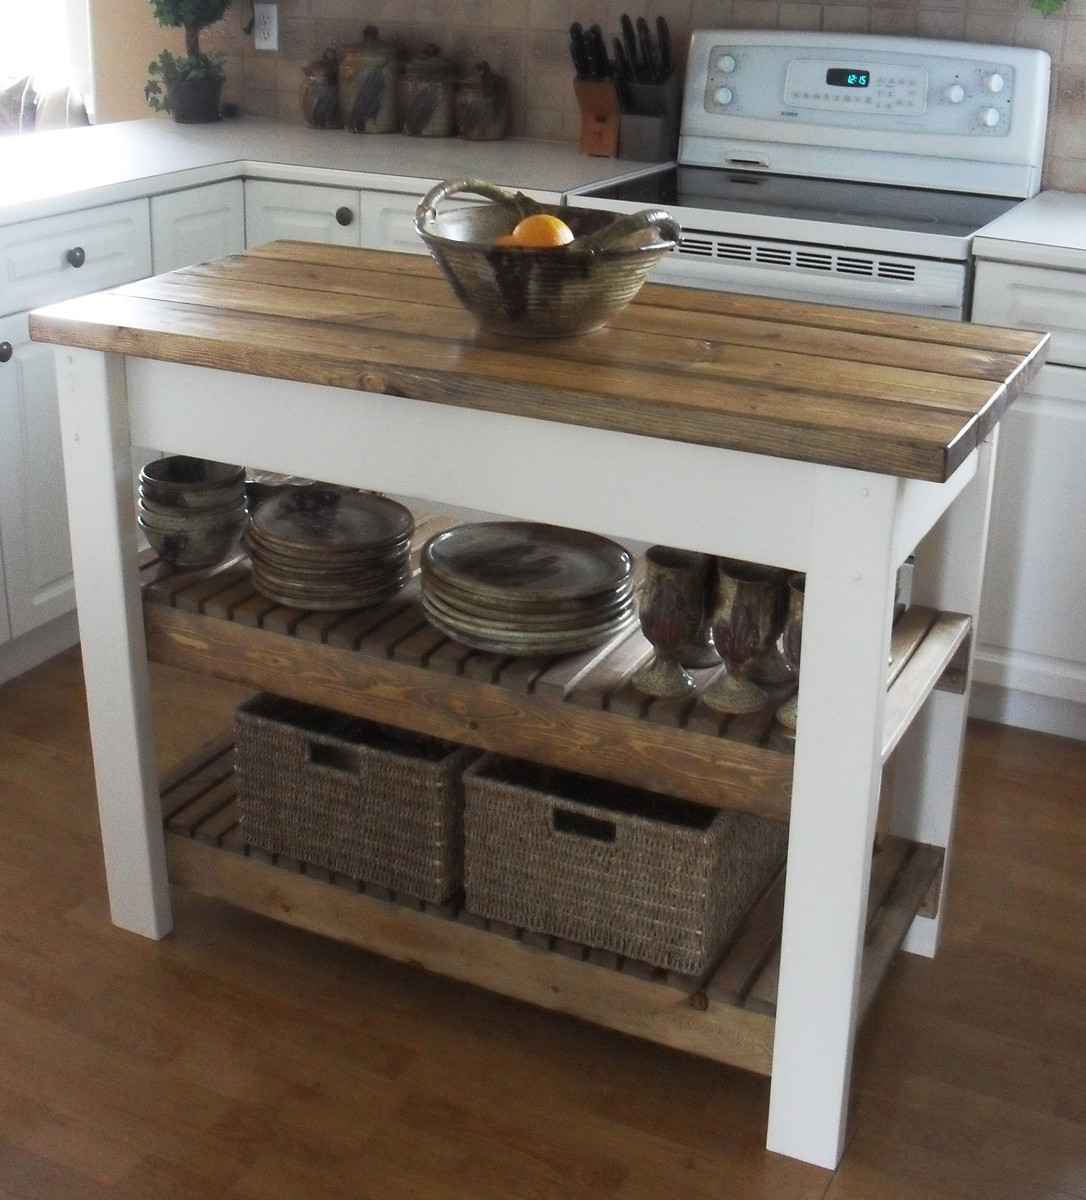 Ana White Kitchen Island DIY Projects - How to build a kitchen island with seating